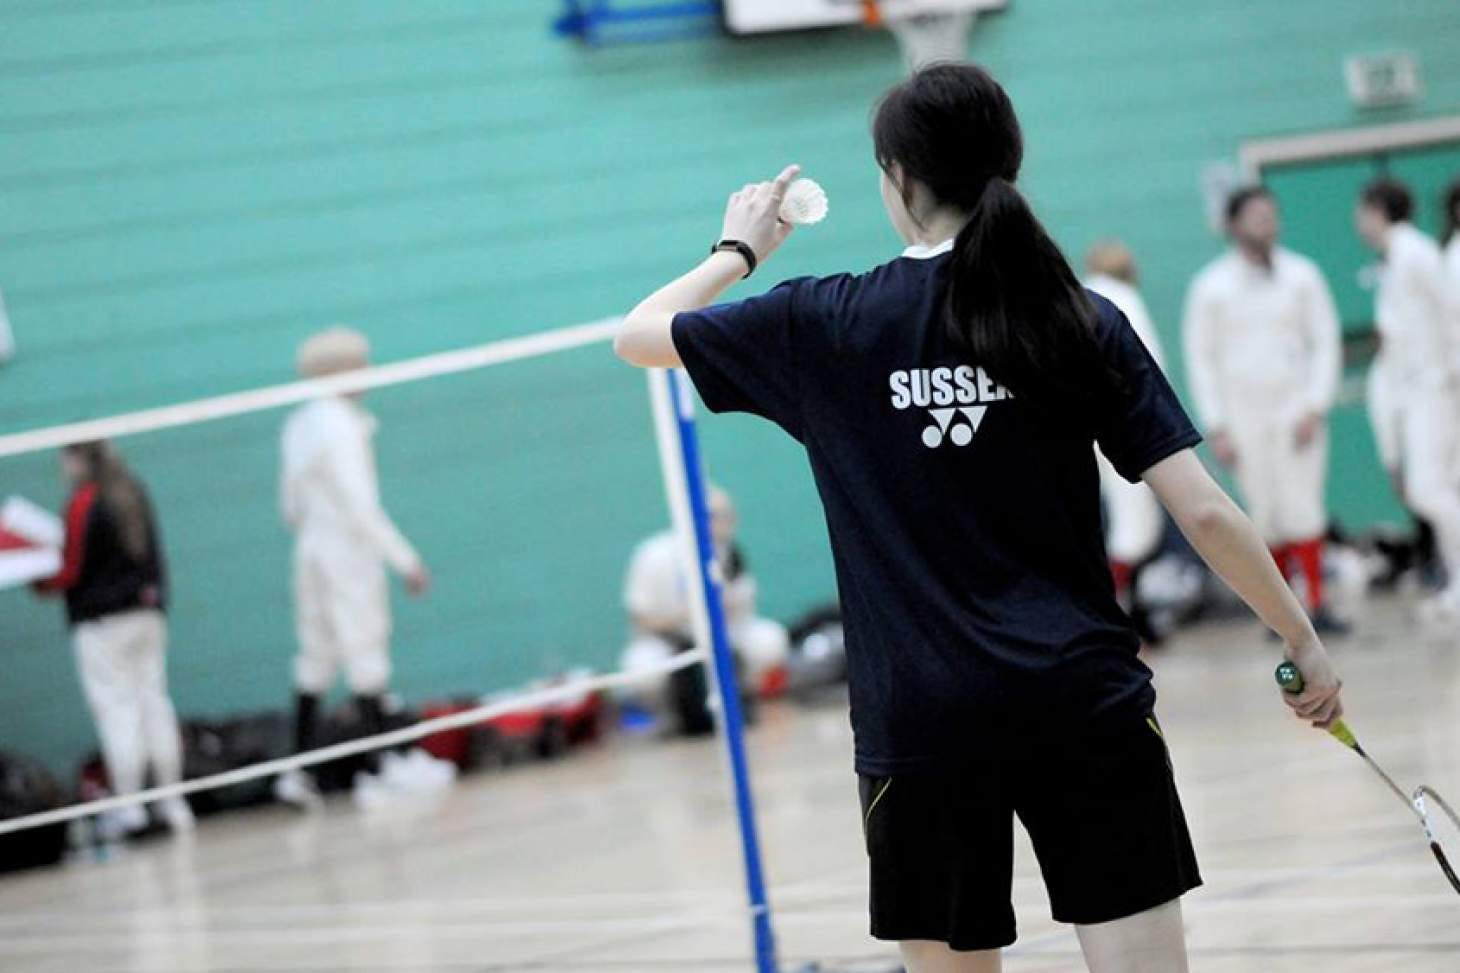 University Of Sussex Sport Centre Indoor | Hard badminton court